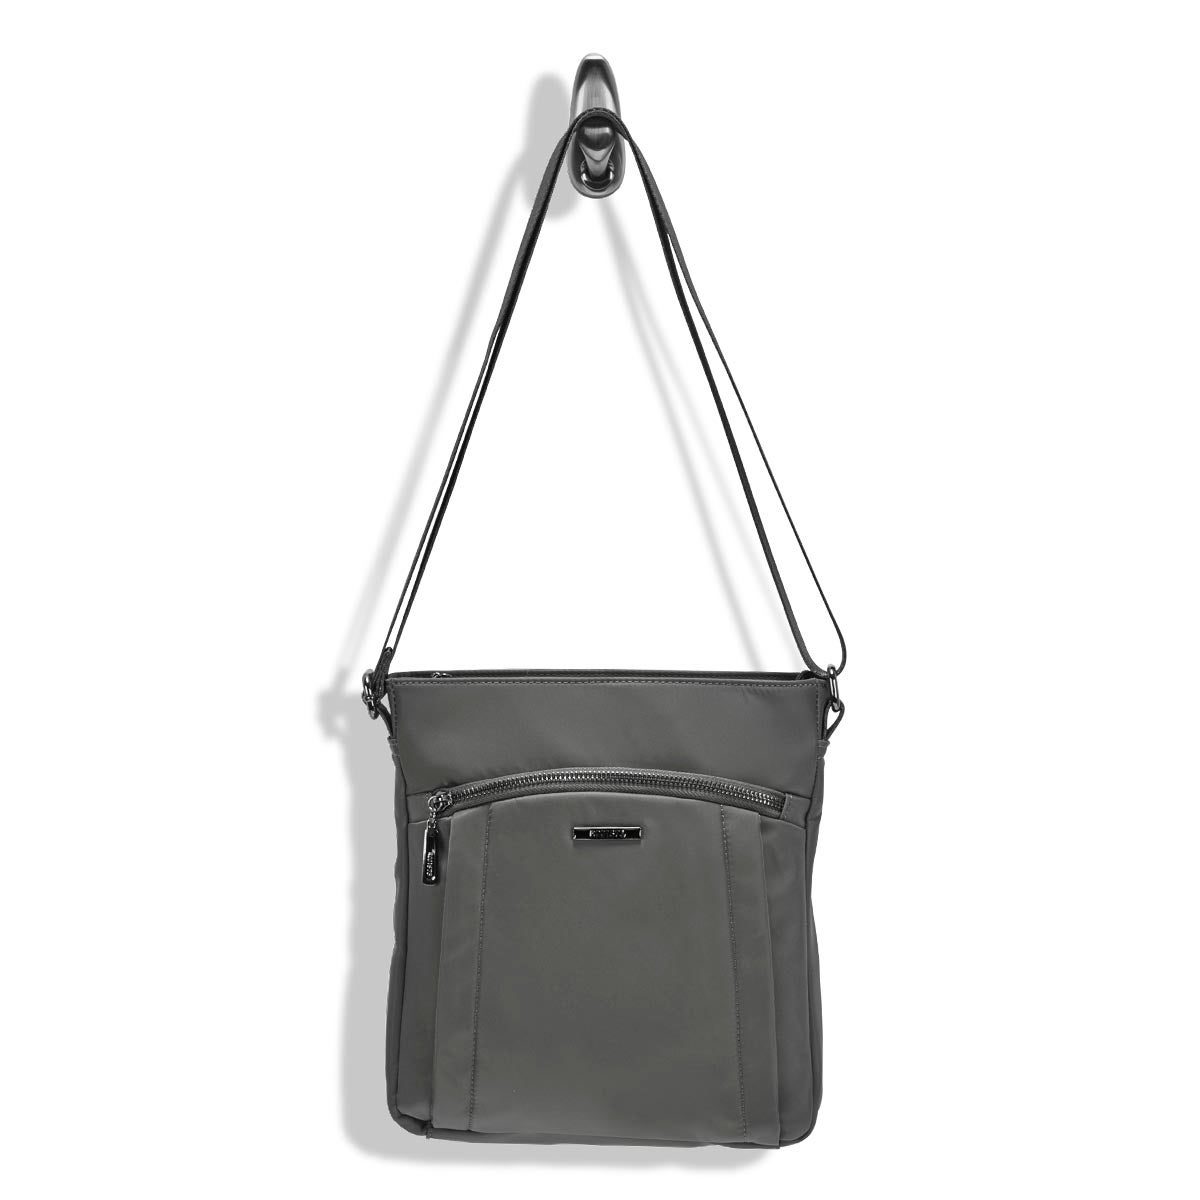 Lds Roots73 grey north/south cross body